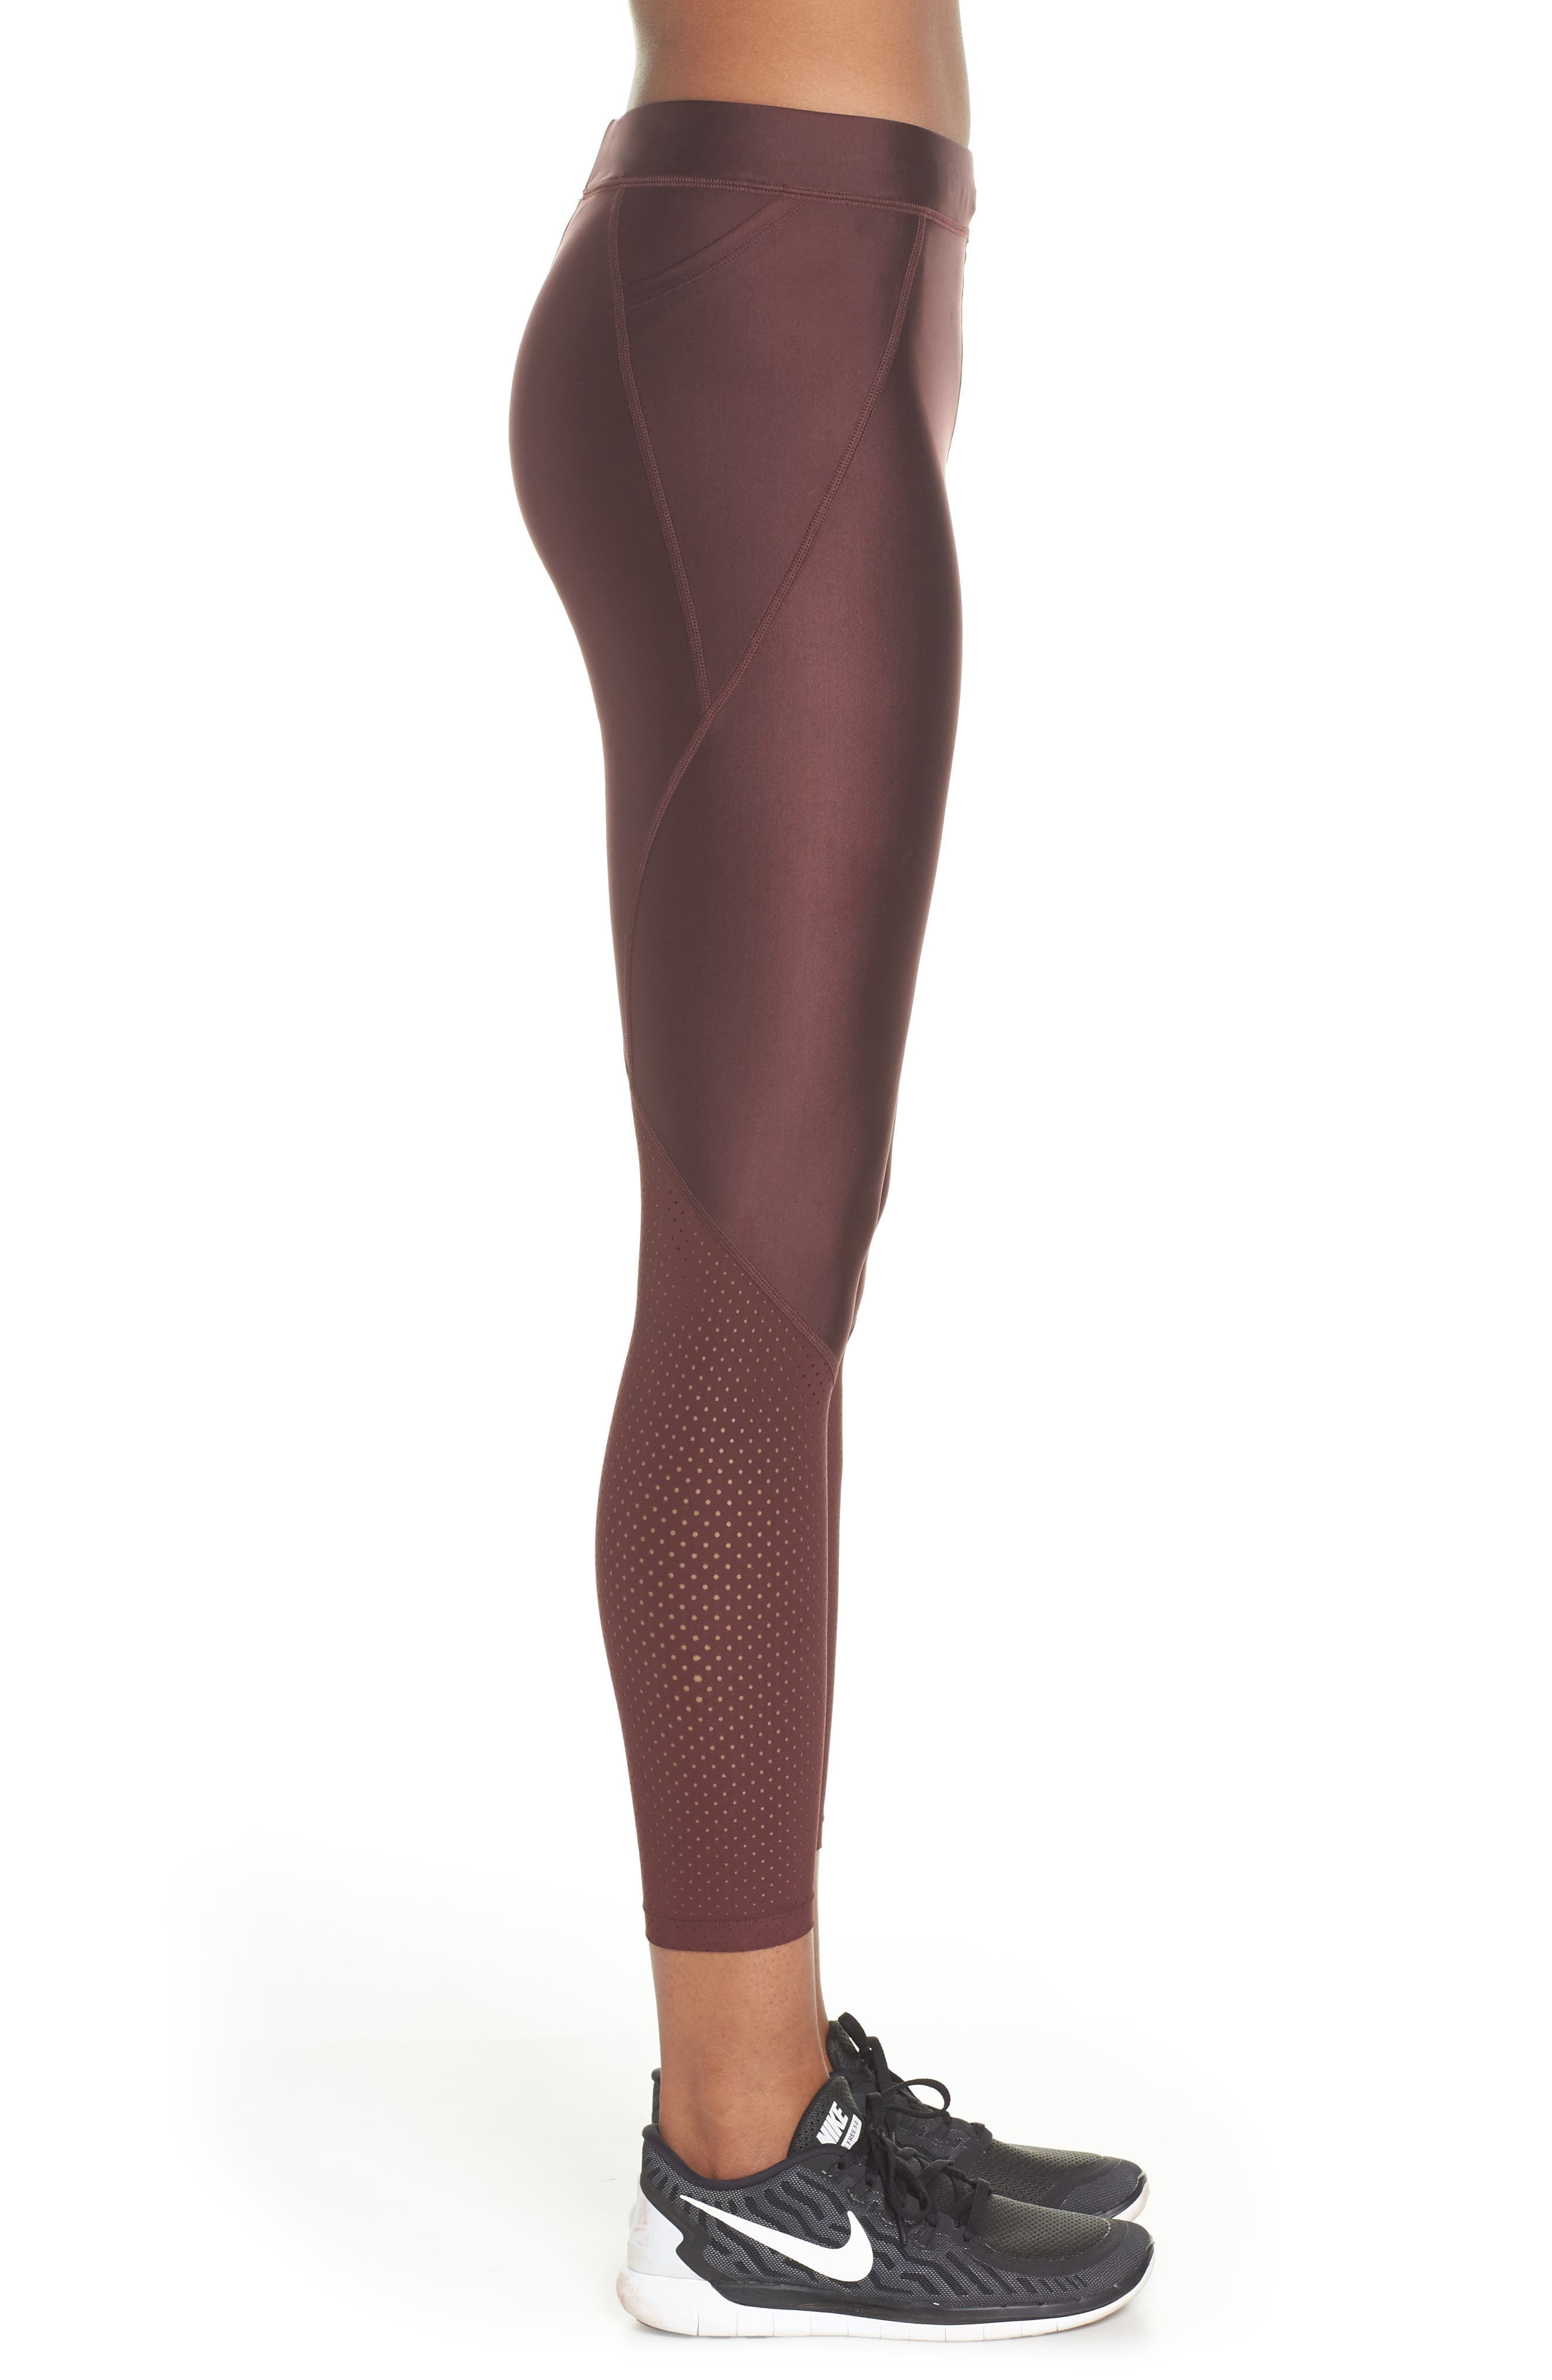 Speed Cool Running Tights,                             Alternate thumbnail 3, color,                             930